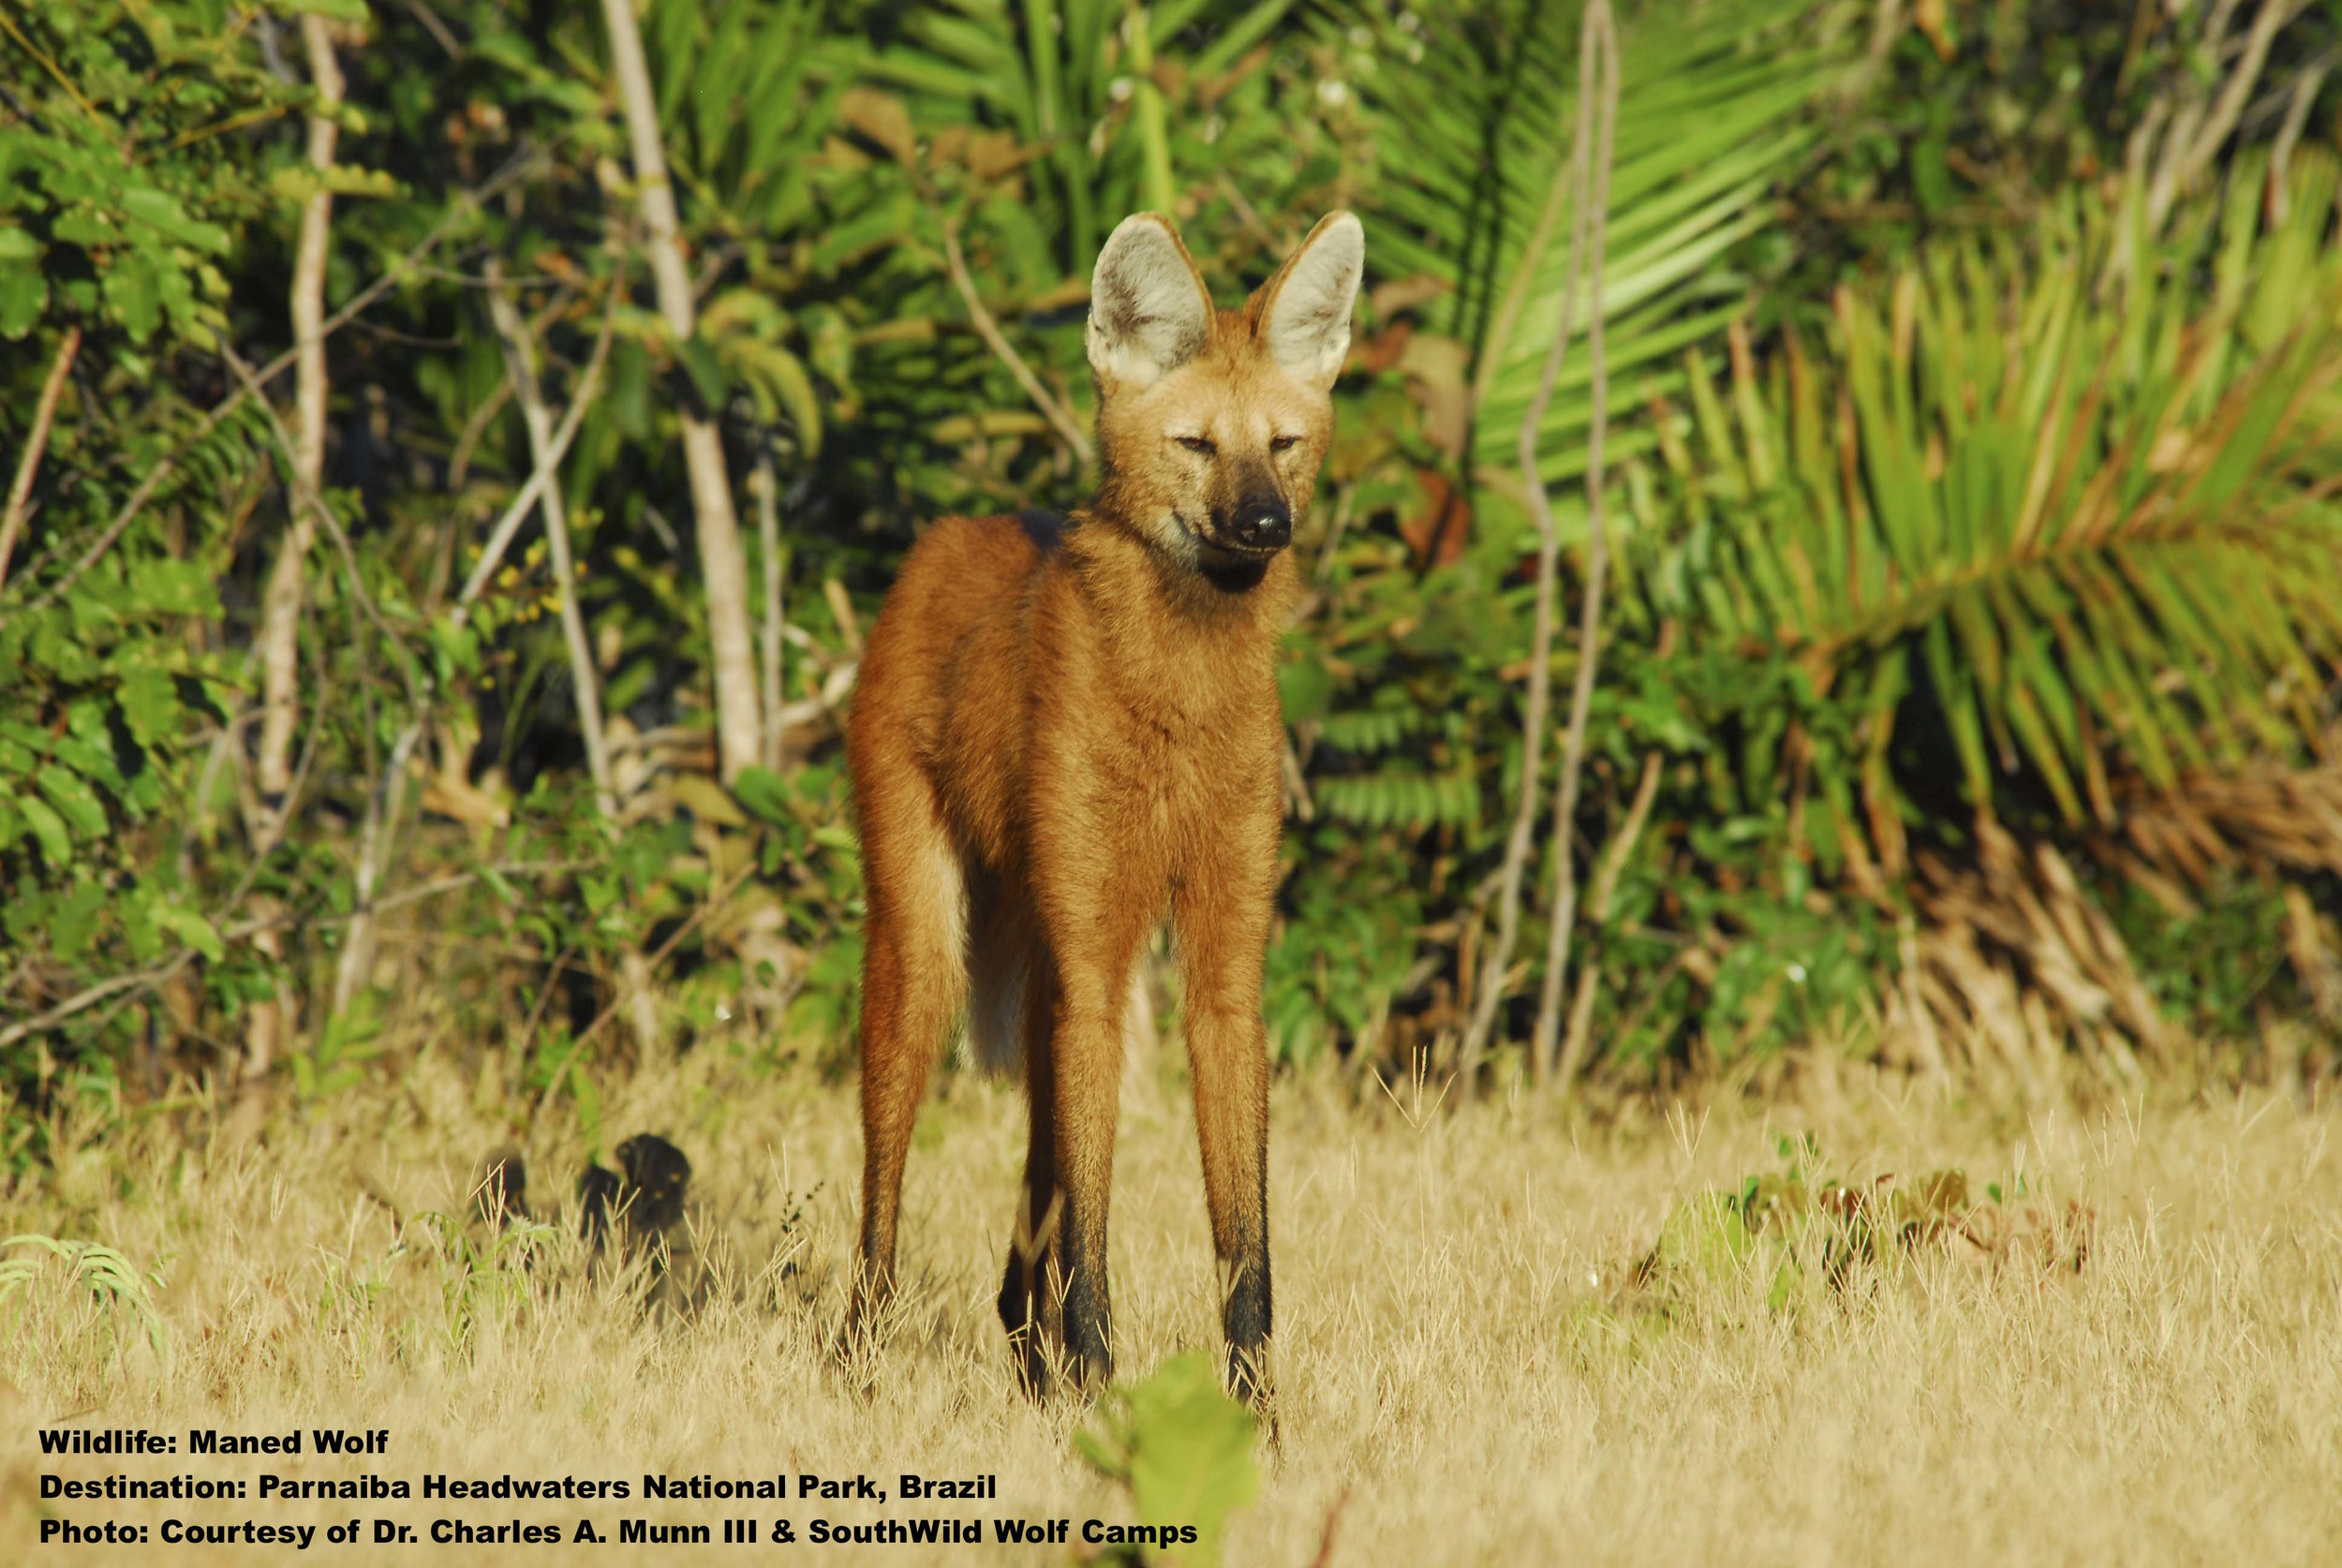 MANED WOLVES  REGULARLY VISIT THE WOLF CLIFF CAMP. YOUR HOST, MAURO OLIVIERA, WILL MAKE SURE YOU HAVE A FRONT ROW SEAT TO EXPERIENCE THESE SHY, BEAUTIFUL, AND THREATENED CREATURES. IMAGE: THANKS TO ©DR. CHARLES A MUNN AND SOUTHWILD, BRAZIL.